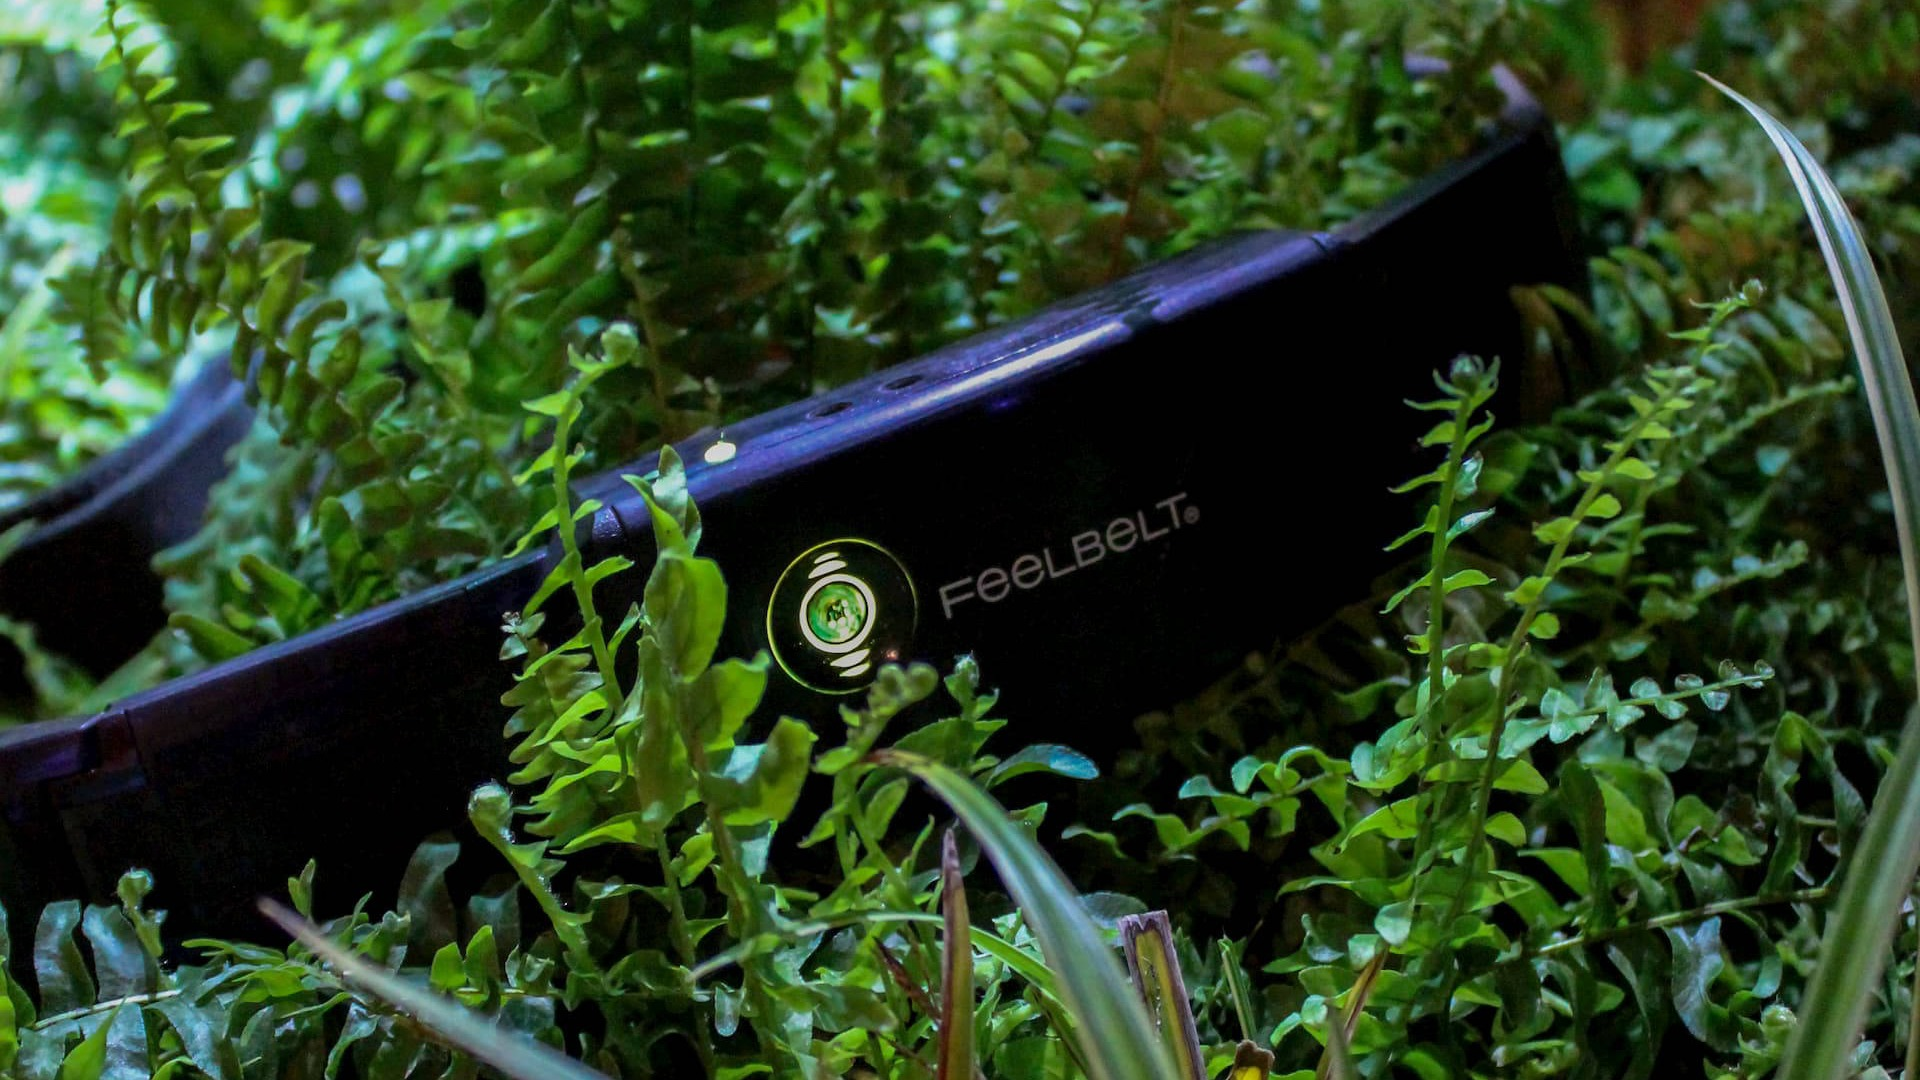 Feelbelt In grass showing companys eco friendly nature